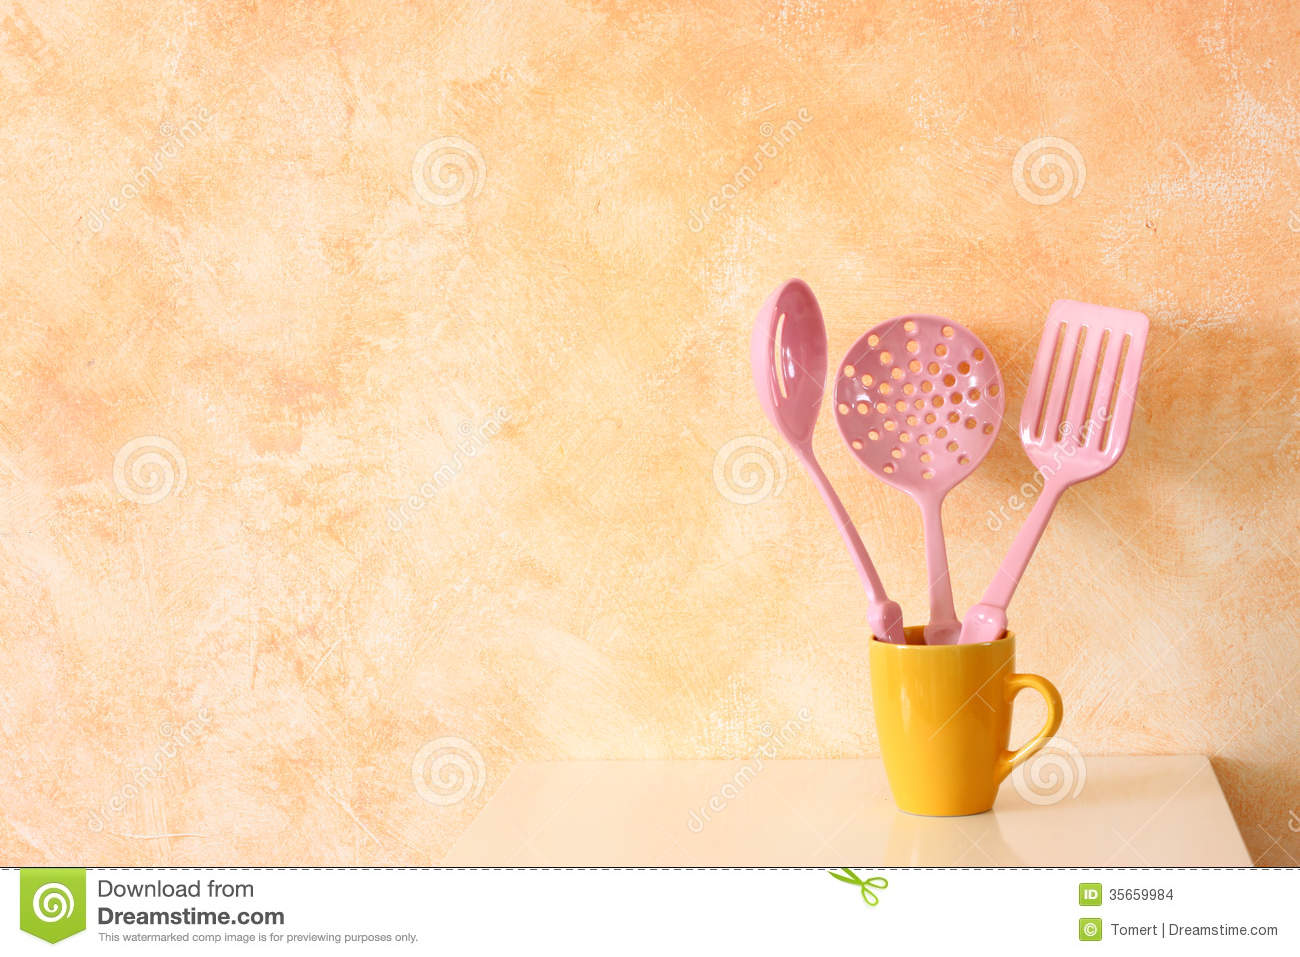 Kitchen Cooking Utensils. Plastic Spatulas In Yellow Cup Against ...